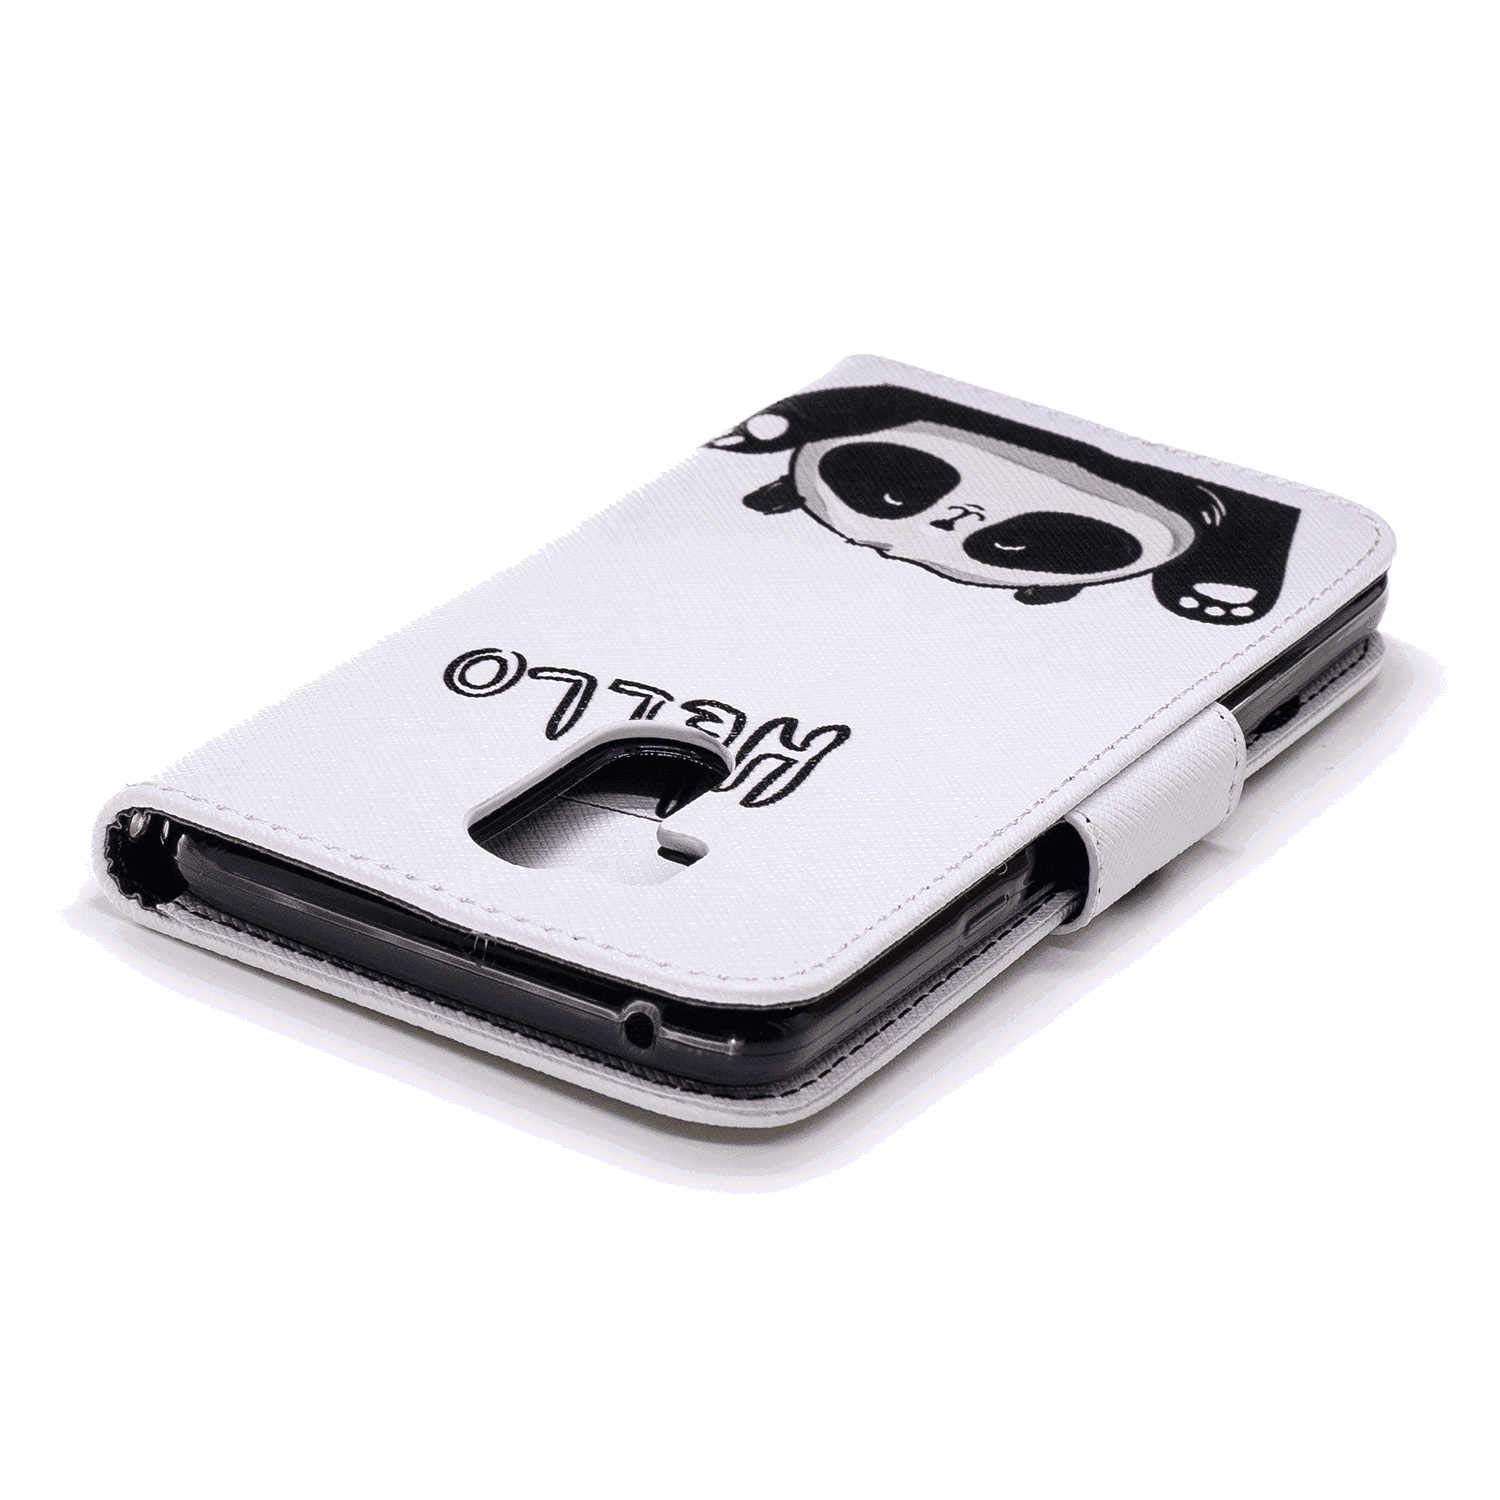 Cover for iPhone X Leather Kickstand Card Holders Mobile Phone Cover Extra-Durable Business with Free iPhone X Flip Case